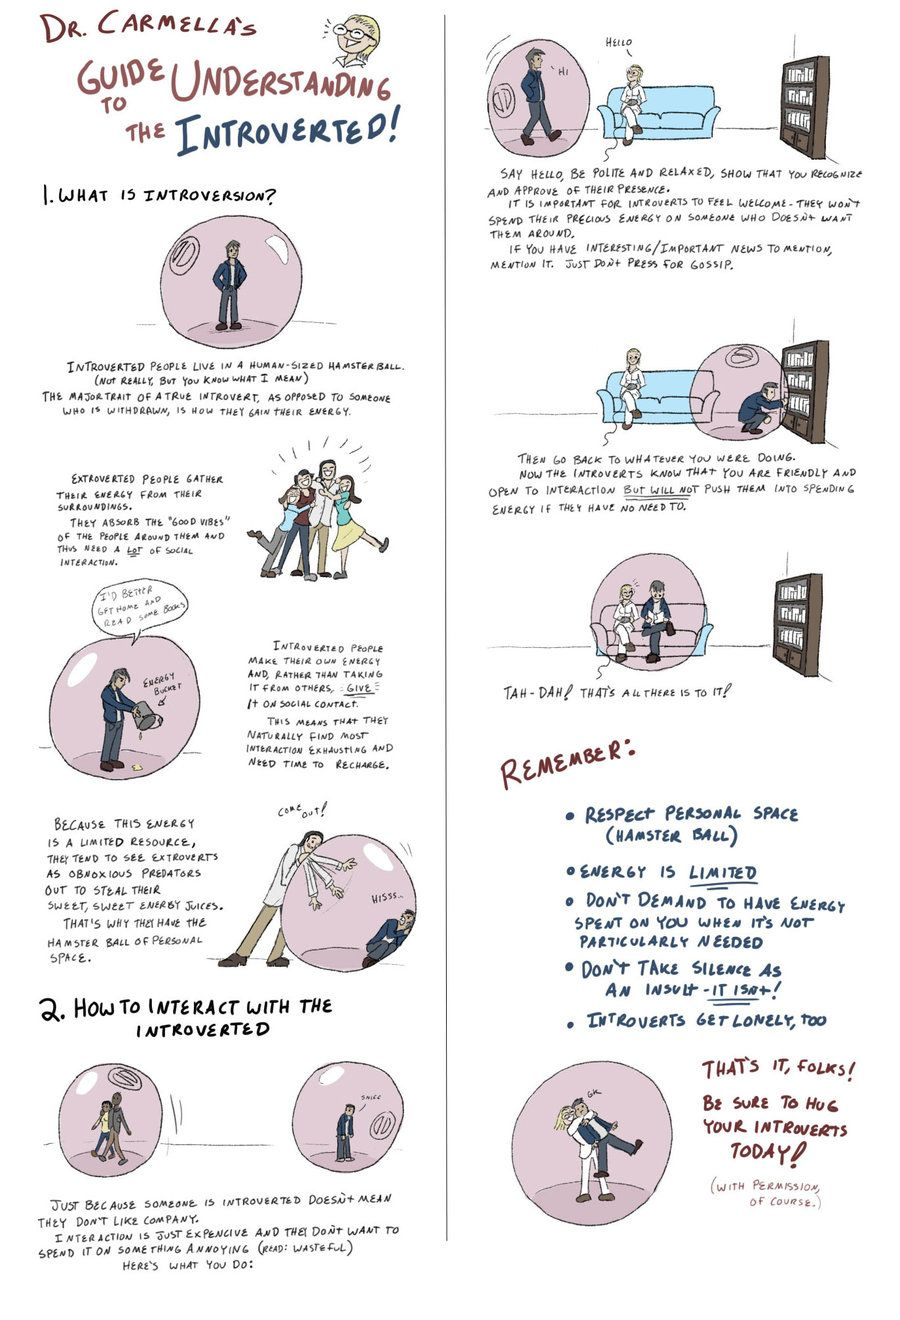 Introvert An How To Interact With